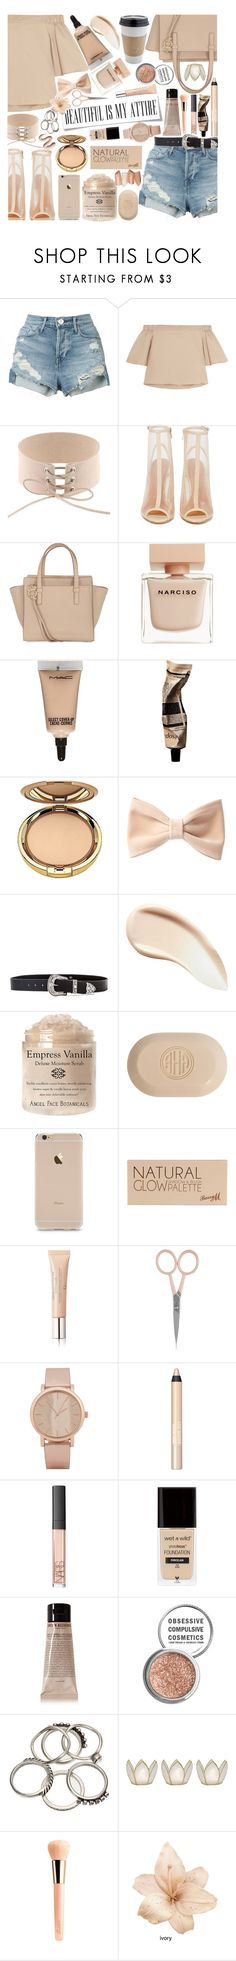 """Difficult roads often lead to beautiful destinations"" by xcuteniallx ❤ liked on Polyvore featuring 3x1, TIBI, Shoe Cult, Salvatore Ferragamo, Narciso Rodriguez, MAC Cosmetics, Aesop, Milani, Forever 21 and B-Low the Belt"